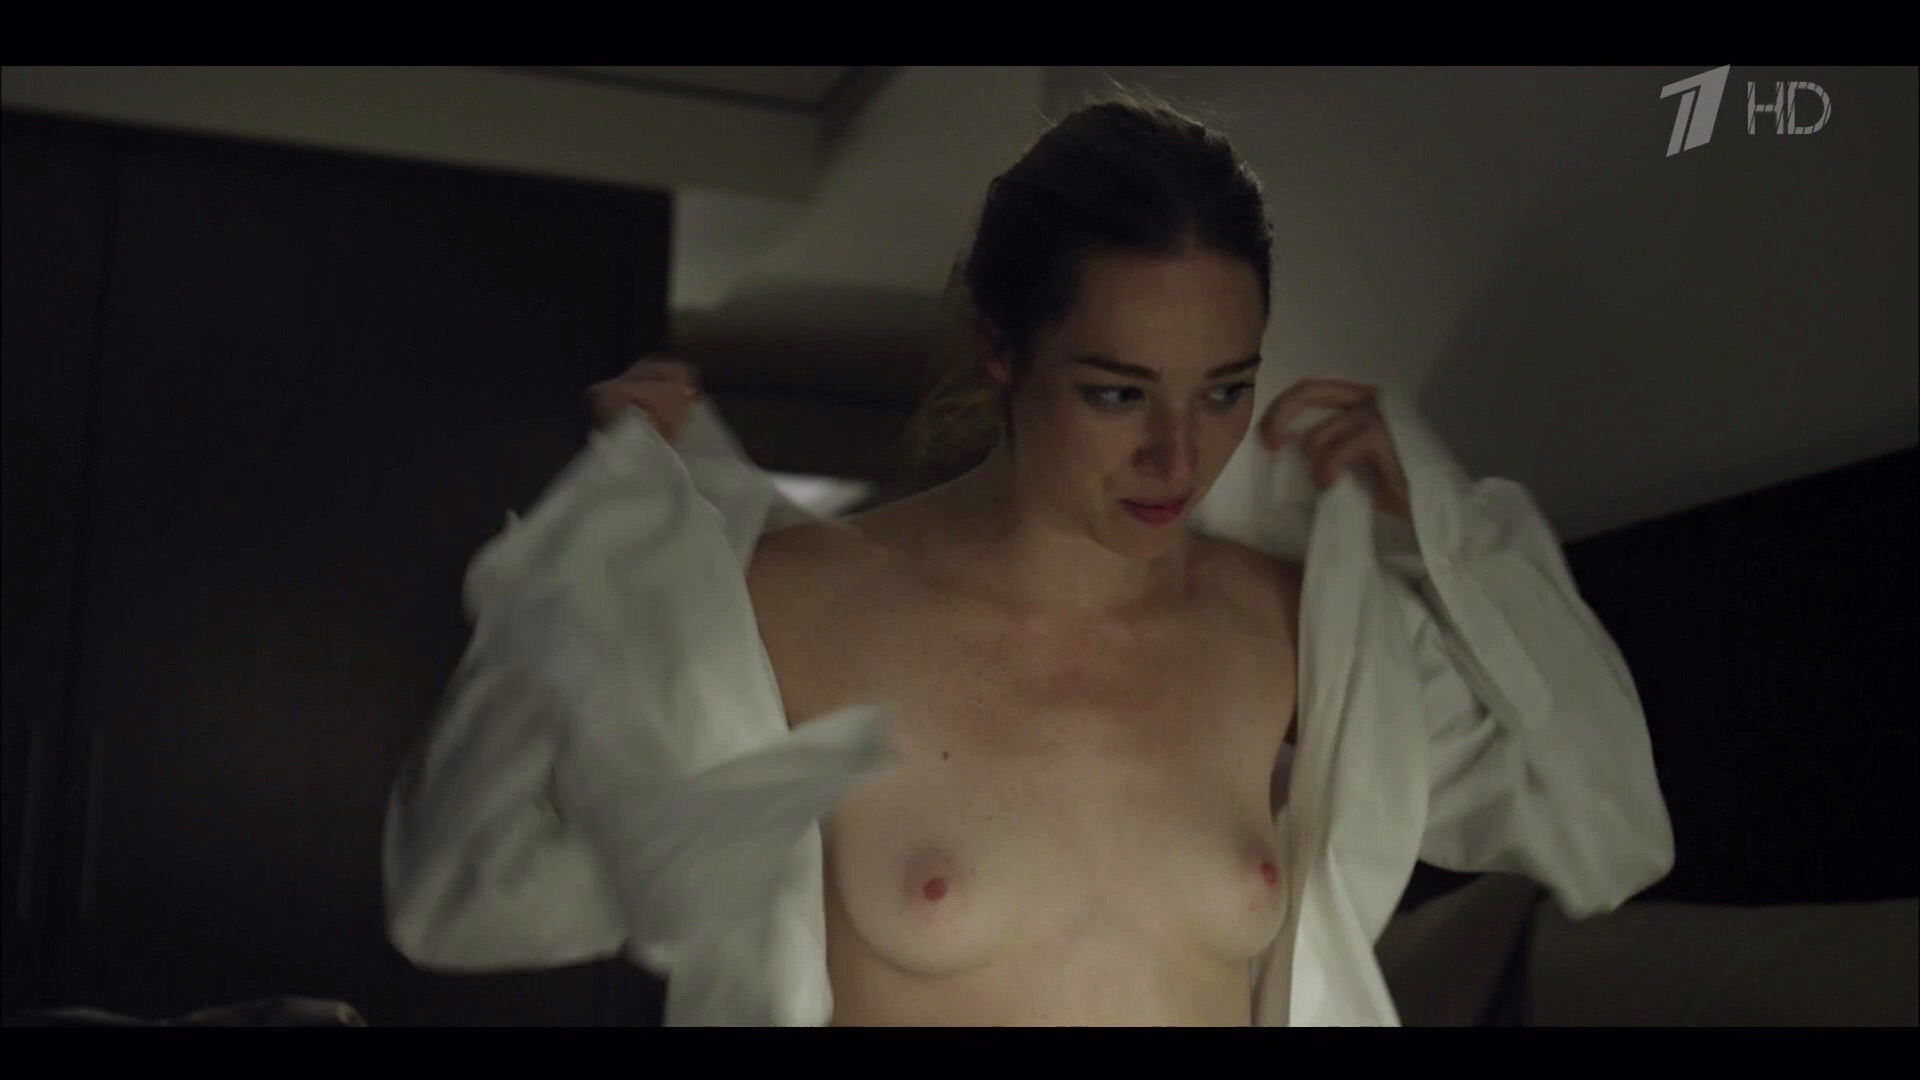 Kristen Connolly – House Of Cards s01e01 (2013) HD 1080p